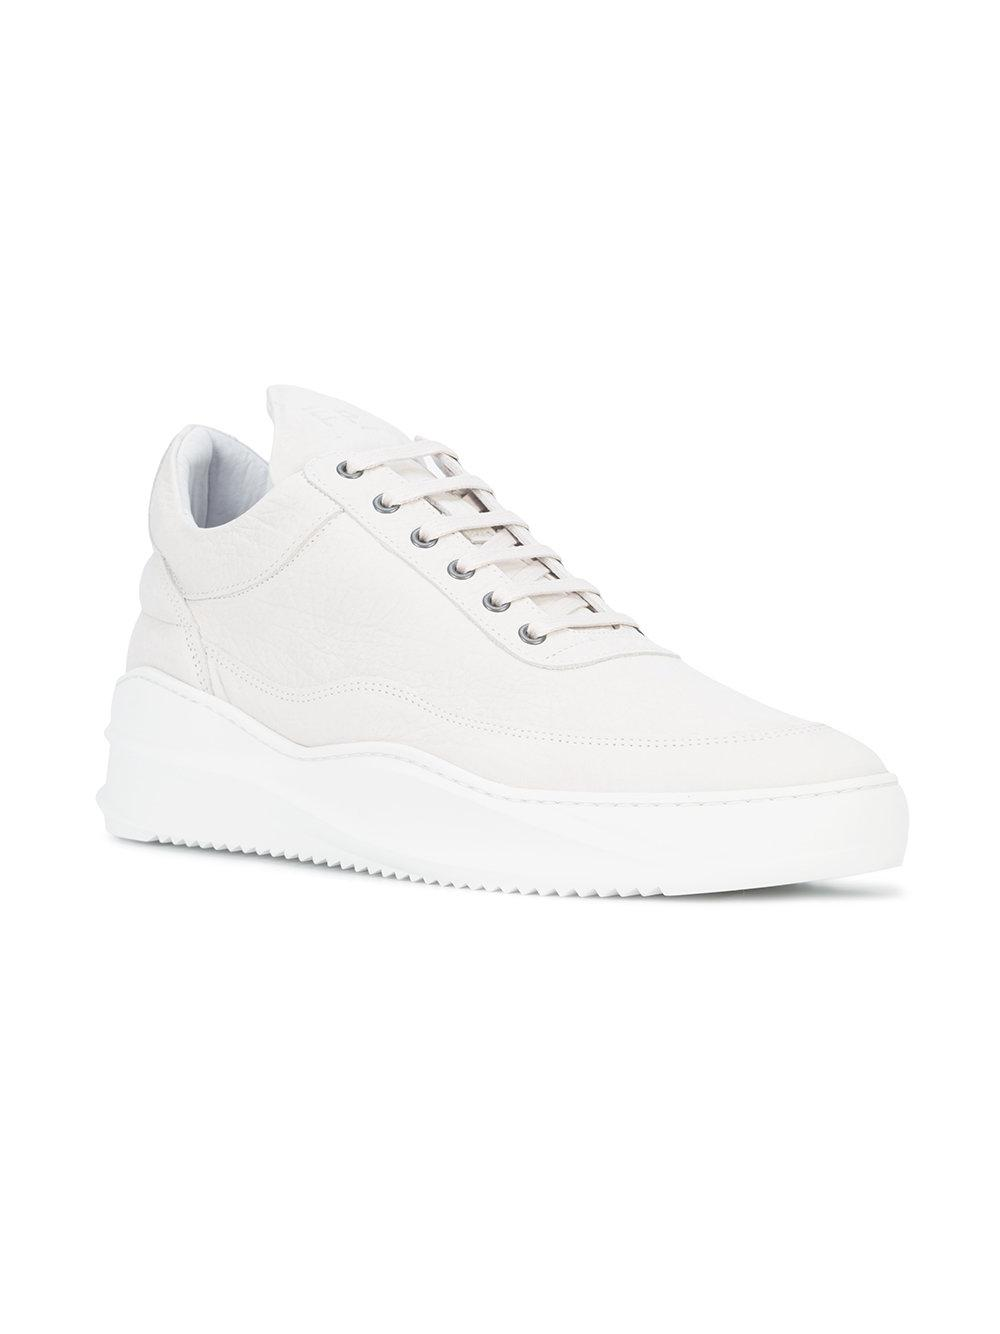 8755579b64efe5 Lyst - Filling Pieces Platform Sole Sneakers in White